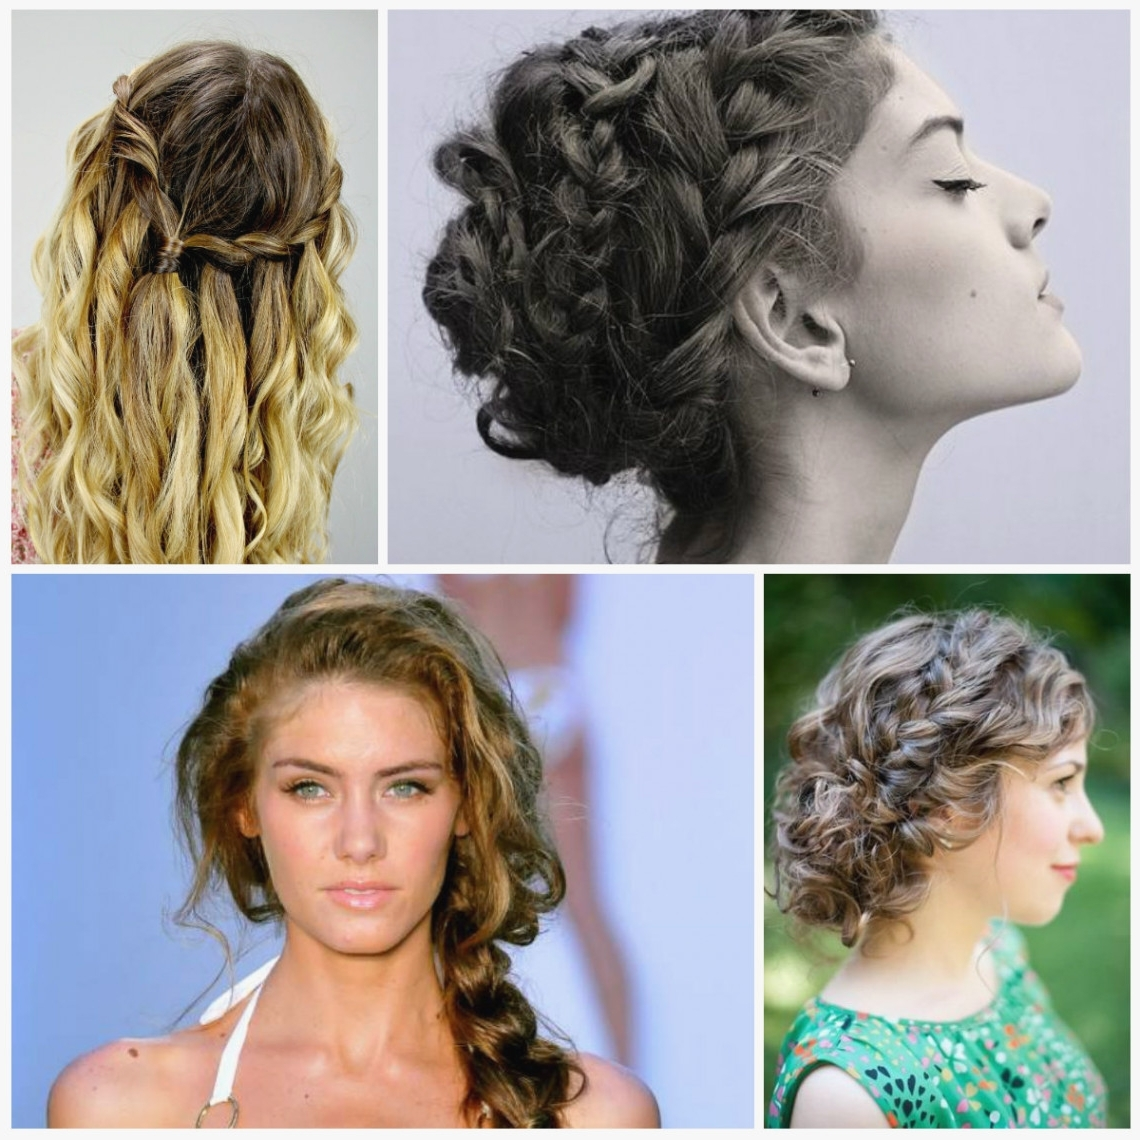 Most Popular Braided Hairstyles For Curly Hair For 13 Good Curly Braided Hairstyles Ideas With Curly Braided Hairstyles (View 9 of 15)